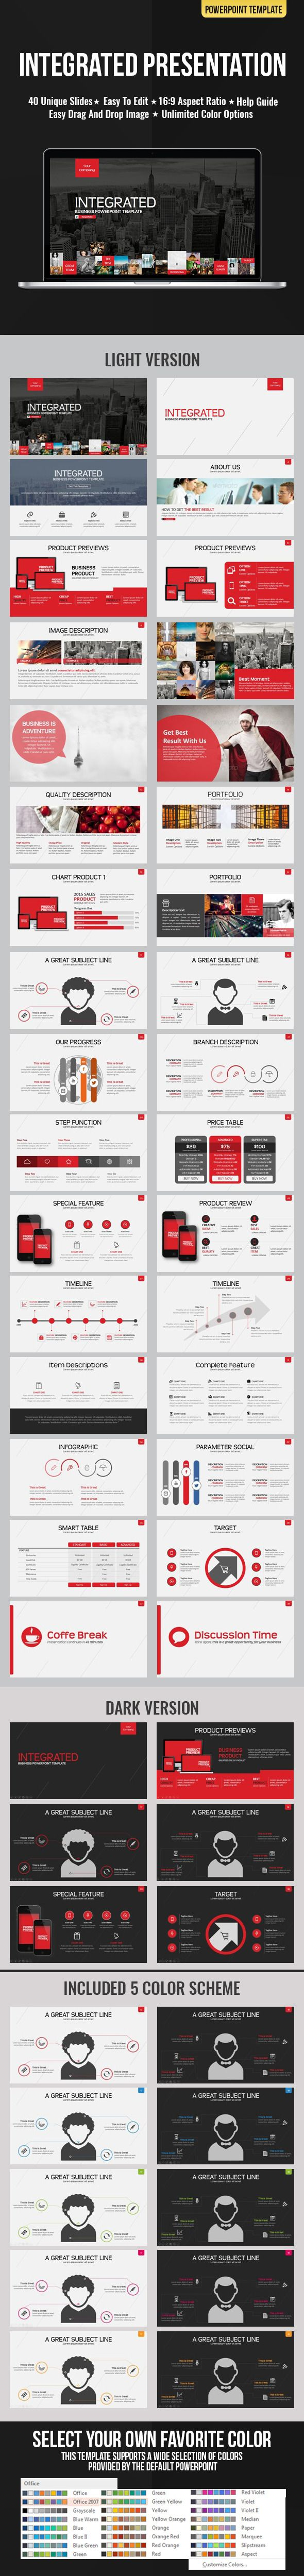 PowerPoint Integrated Presentation Template #design Download: http://graphicriver.net/item/integrated-presentation/12072768?ref=ksioks